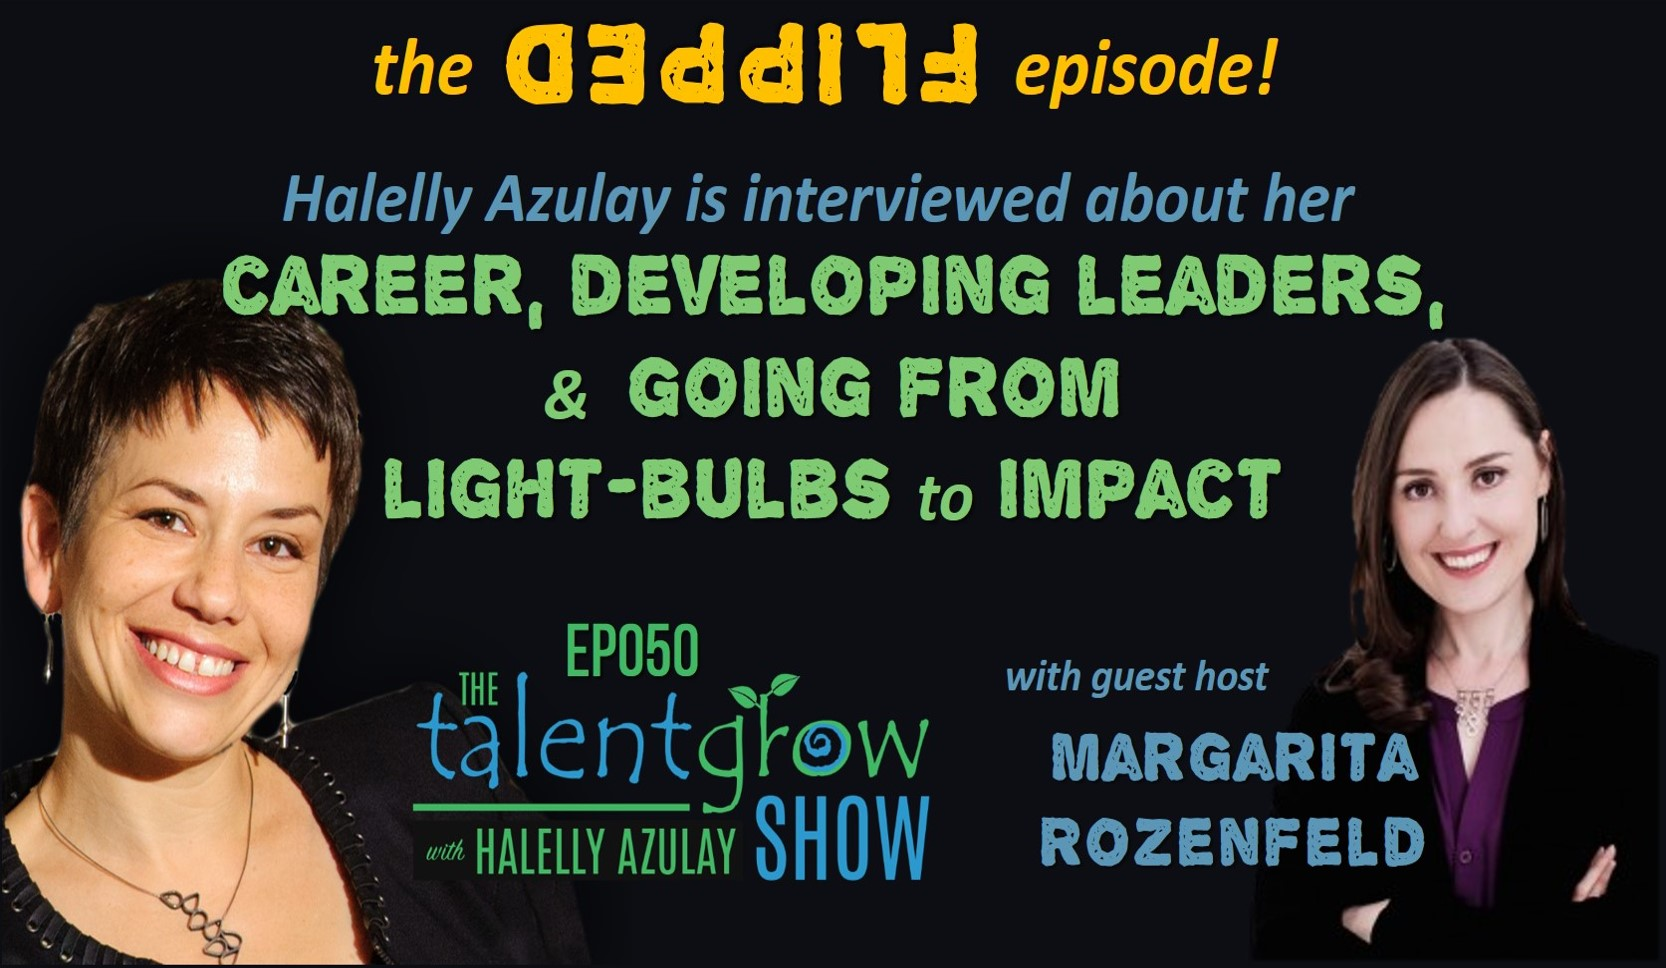 Halelly Azulay host of the TalentGrow Show podcast is interviewed by Margarita Rozenfeld on the FLIPPED episode ep 050